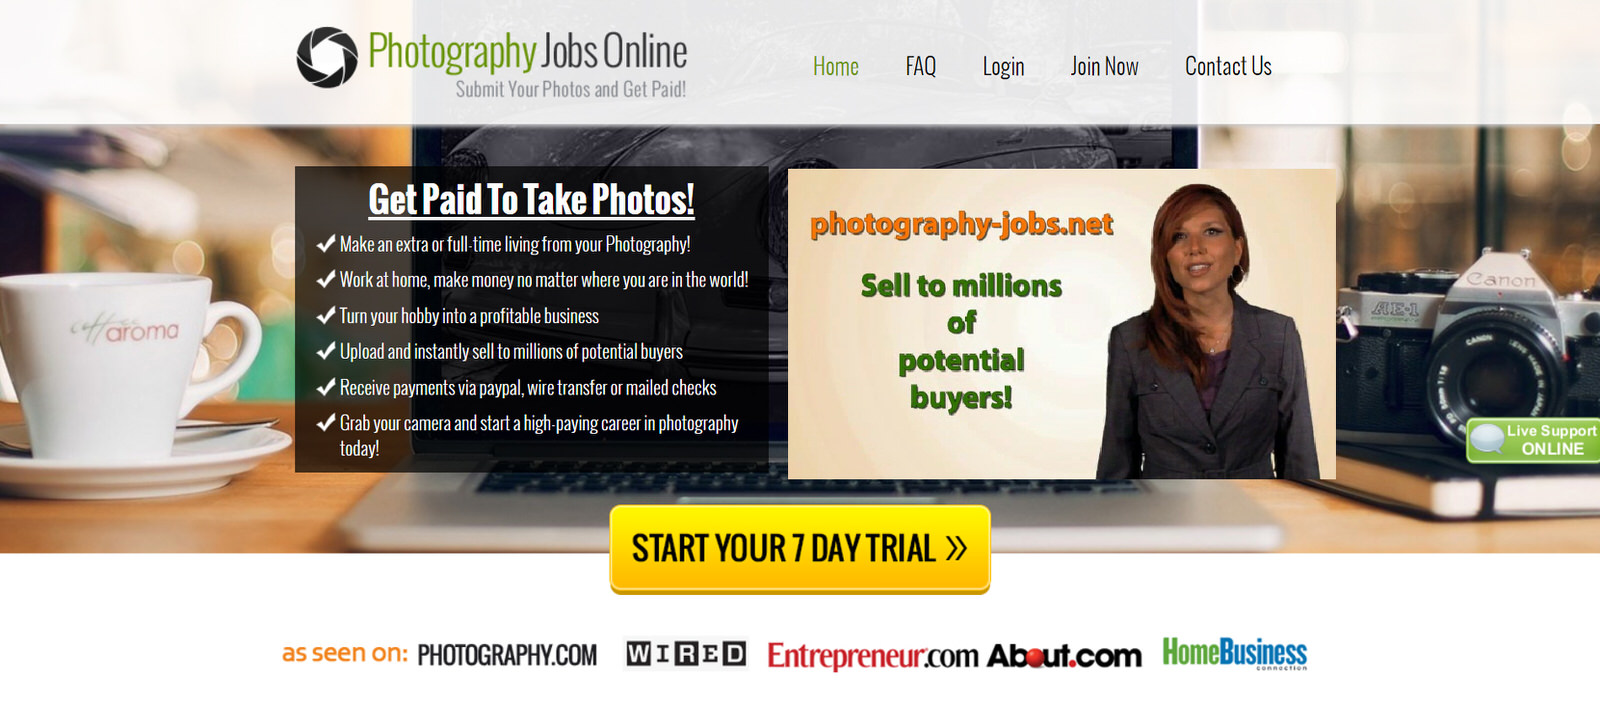 31 Places to Find Freelance Photography Jobs Online